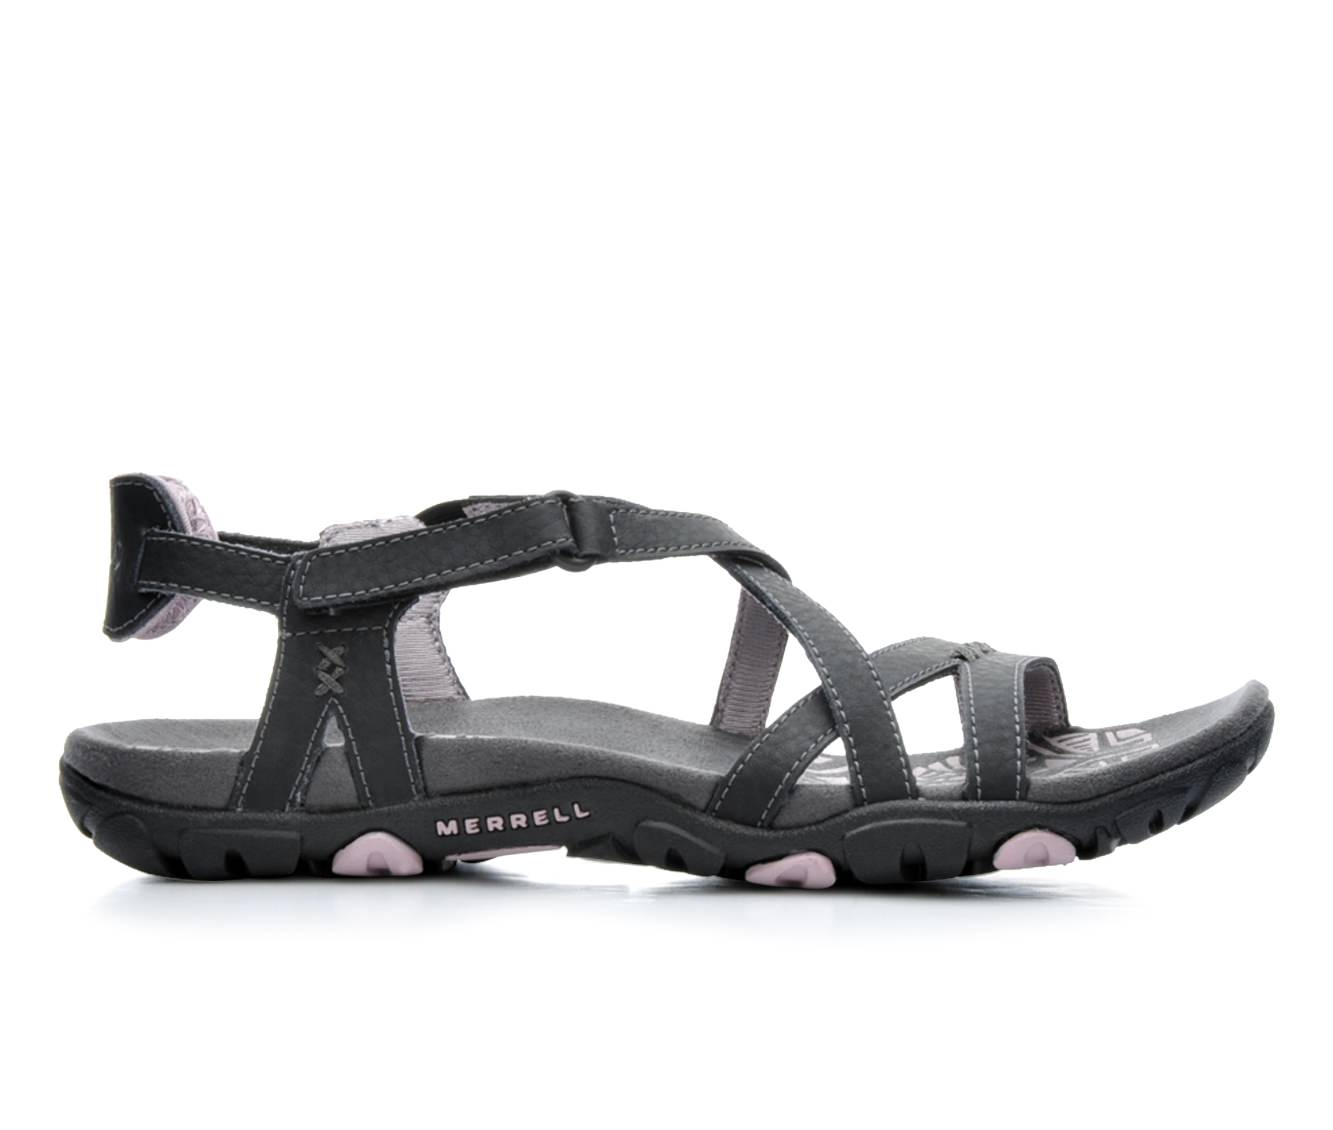 Women's Merrell Sandspur Rose Leather Sandals (Black)